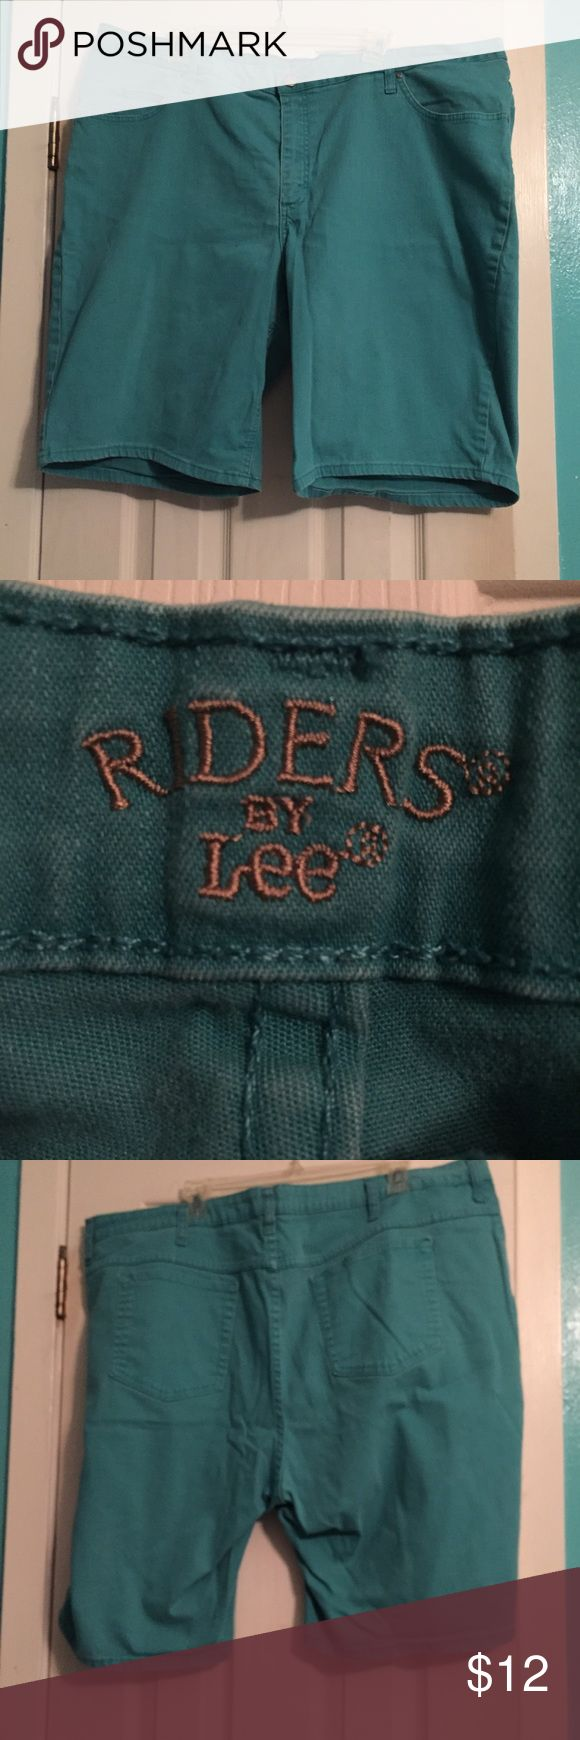 Riders by Lee Teal / Aqua Shorts Teal / Aqua Shorts Good condition. Size: 26W Medium  Measurements: Rise: 13 in, Waist: 21.5in, Leg- L: 10in   W: 12.5in. Riders by Lee Shorts Jean Shorts